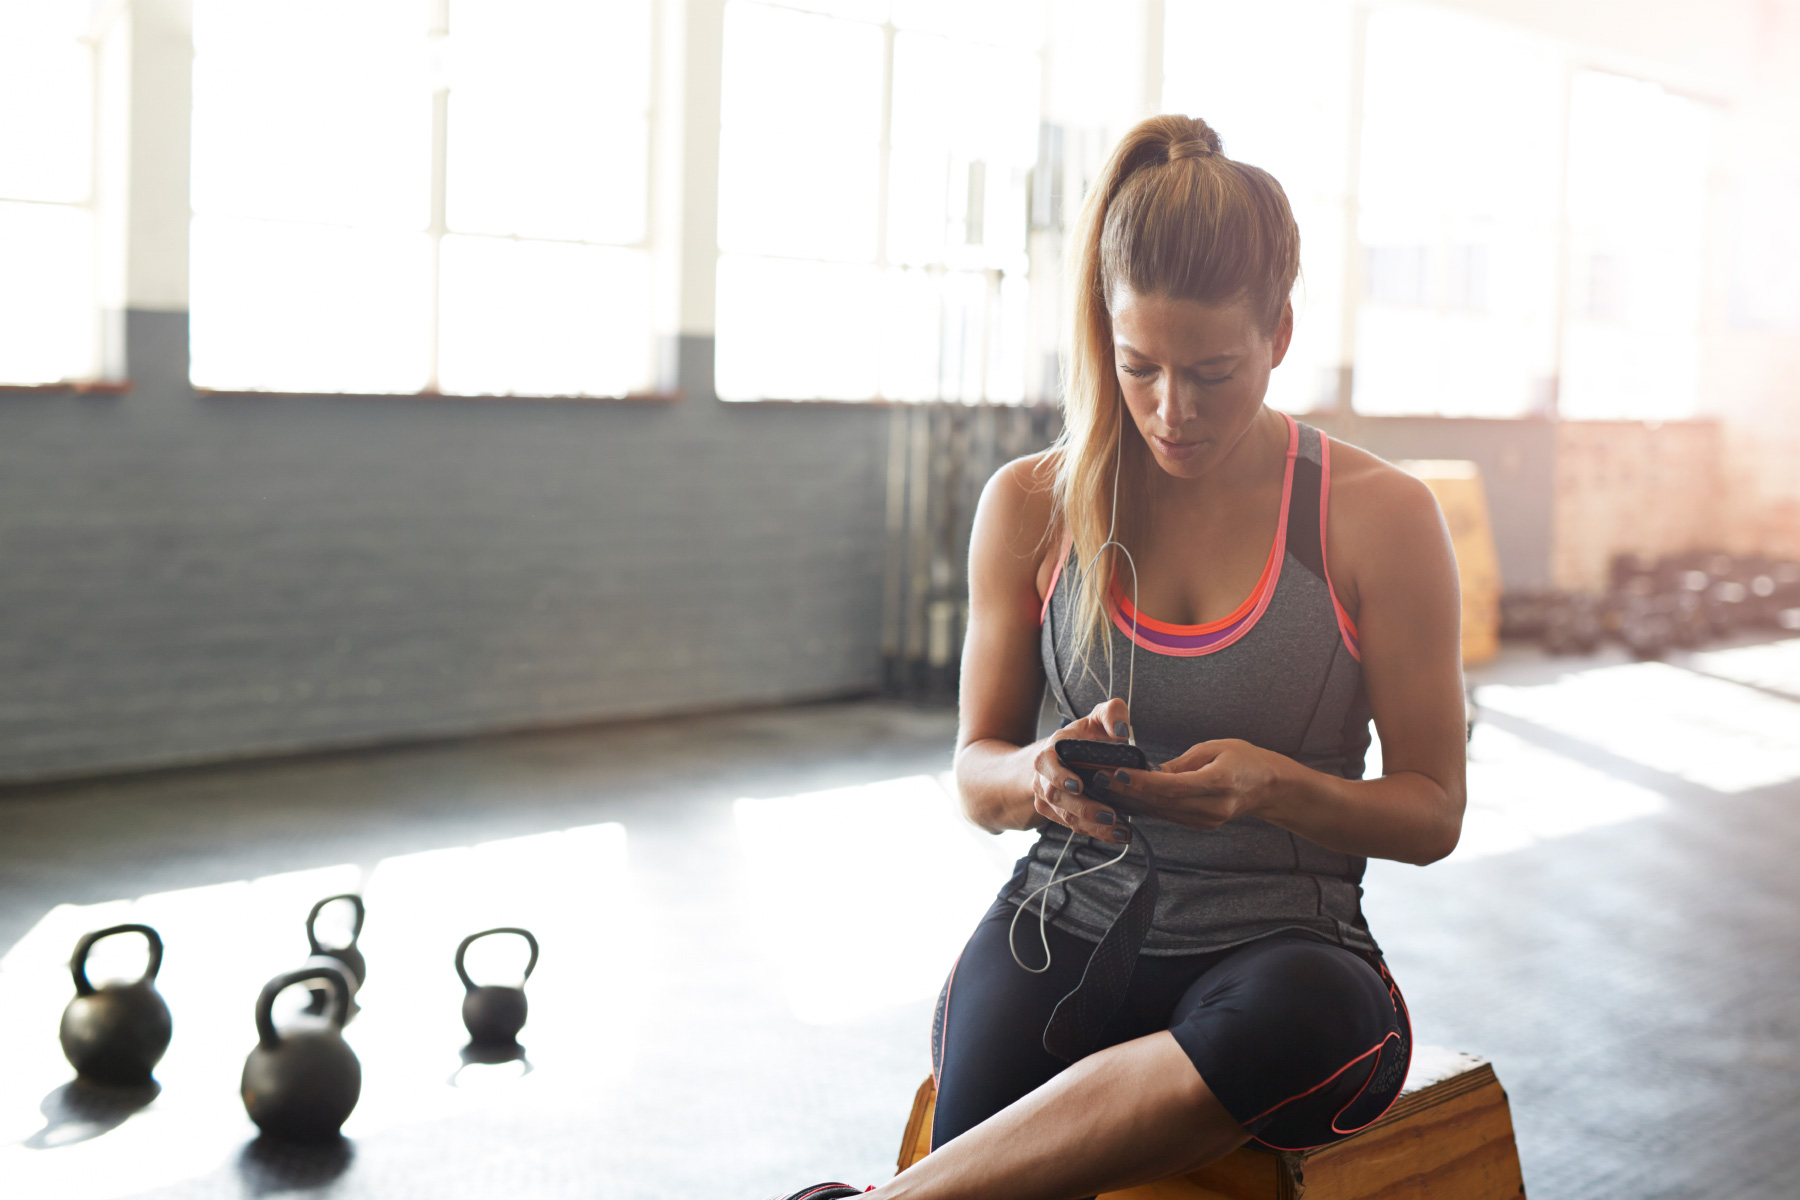 Woman checking smartphone in gym